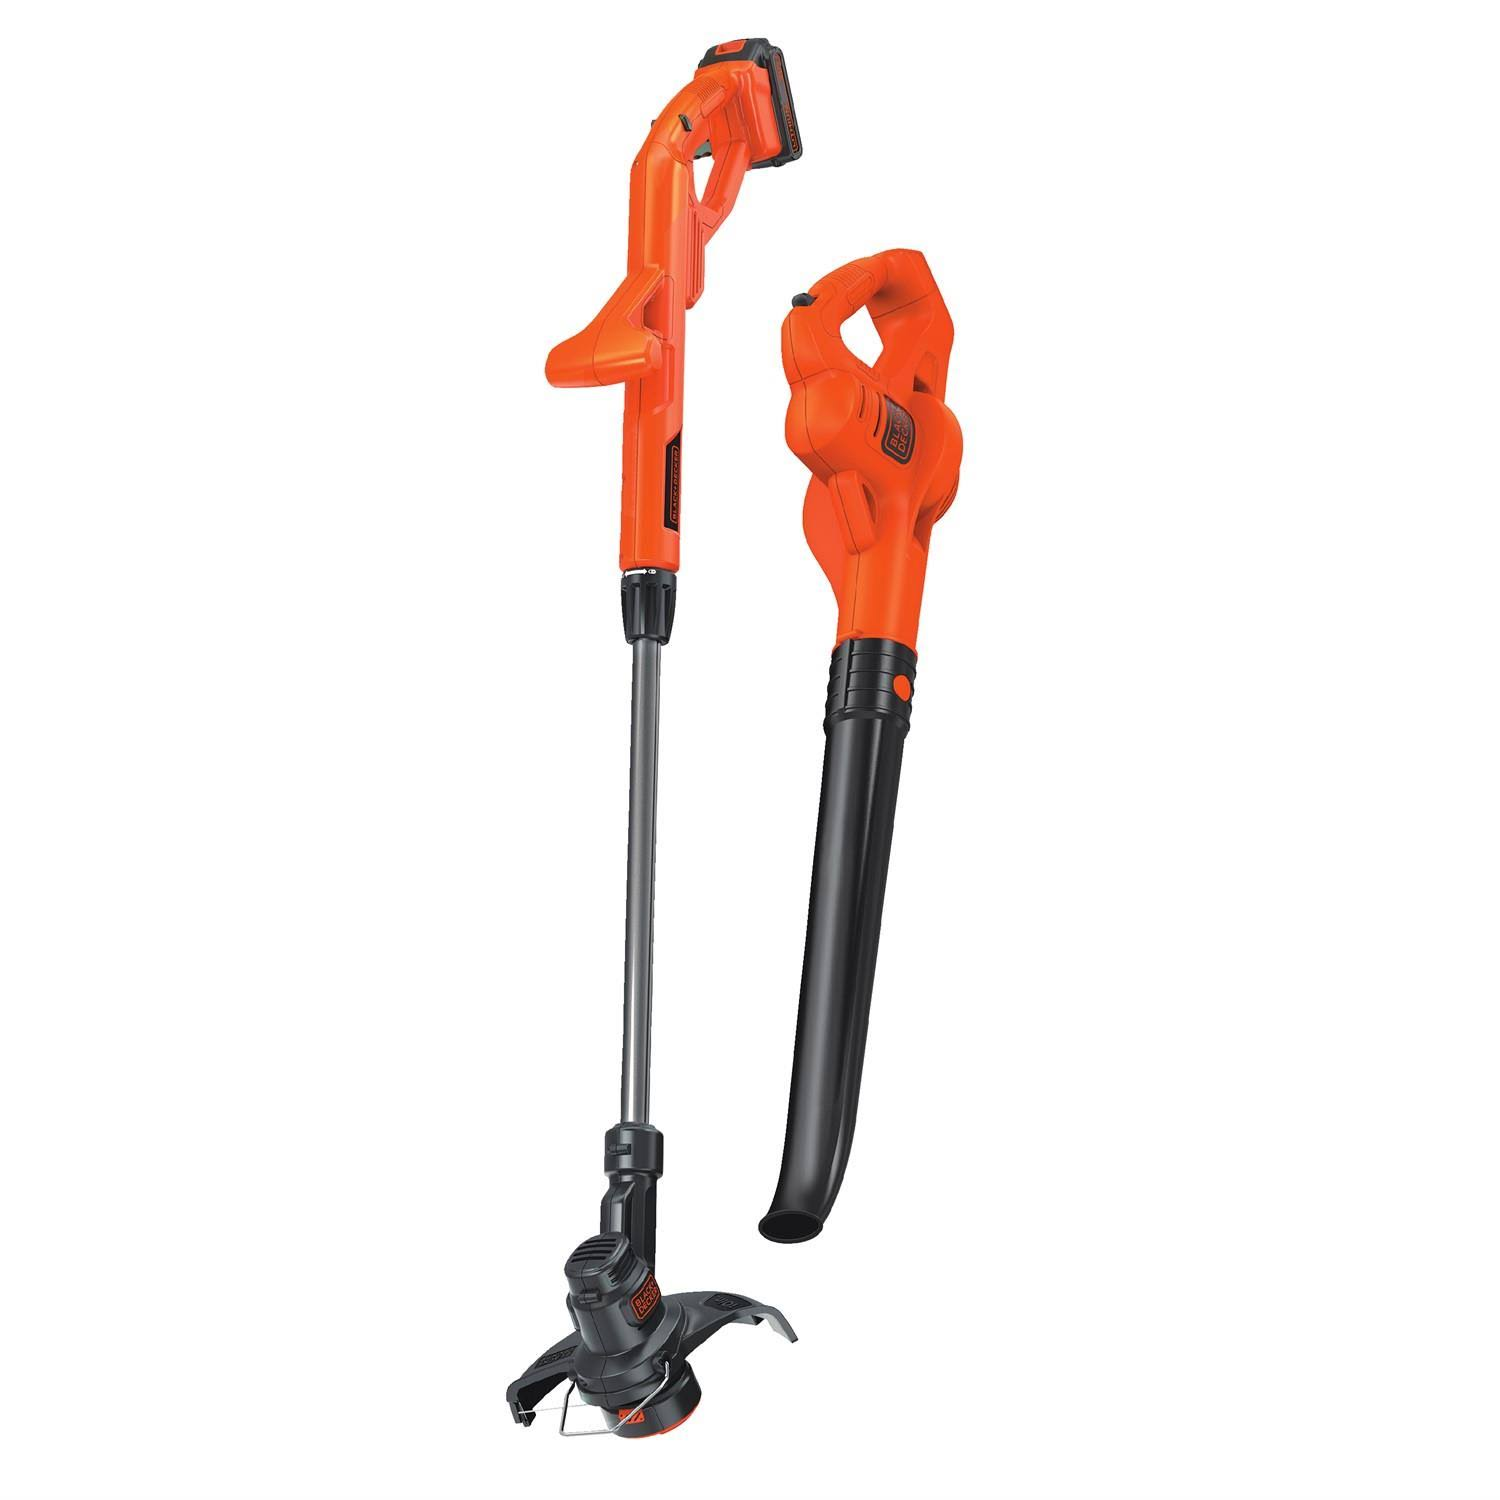 Black & Decker Trimmer And Sweeper Combo - 20V, Orange